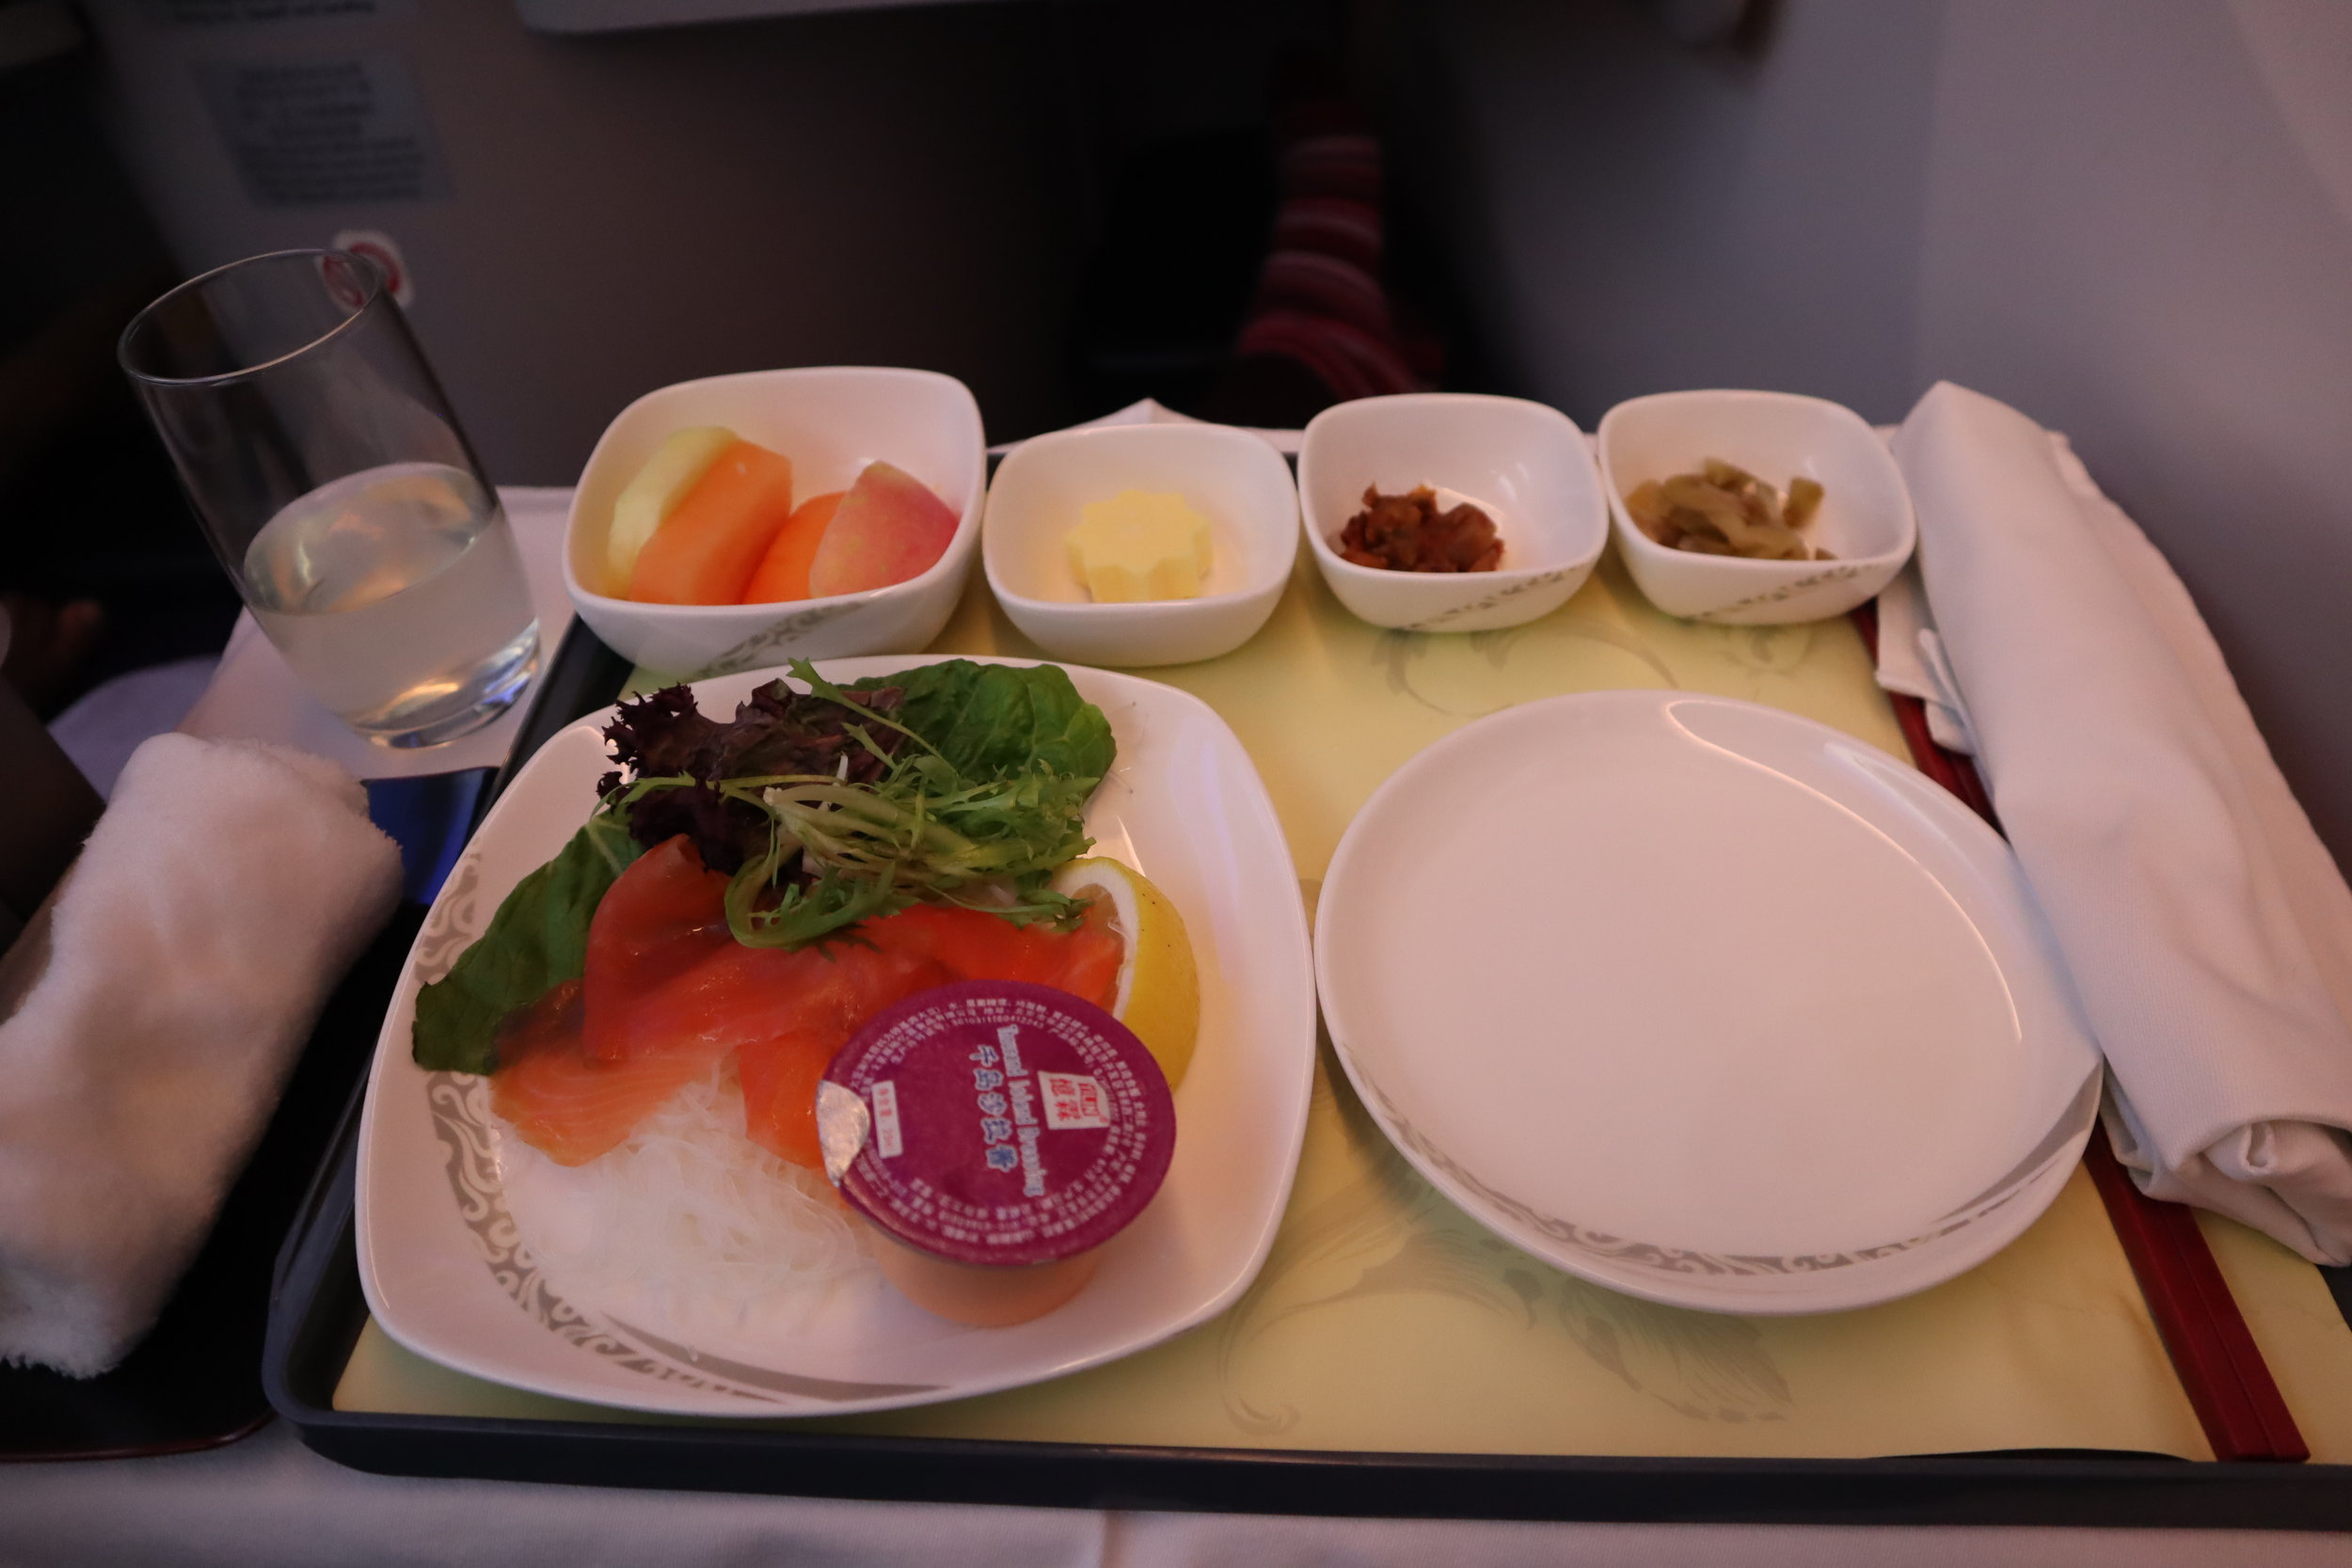 Air China business class – Salmon and vermicelli salad